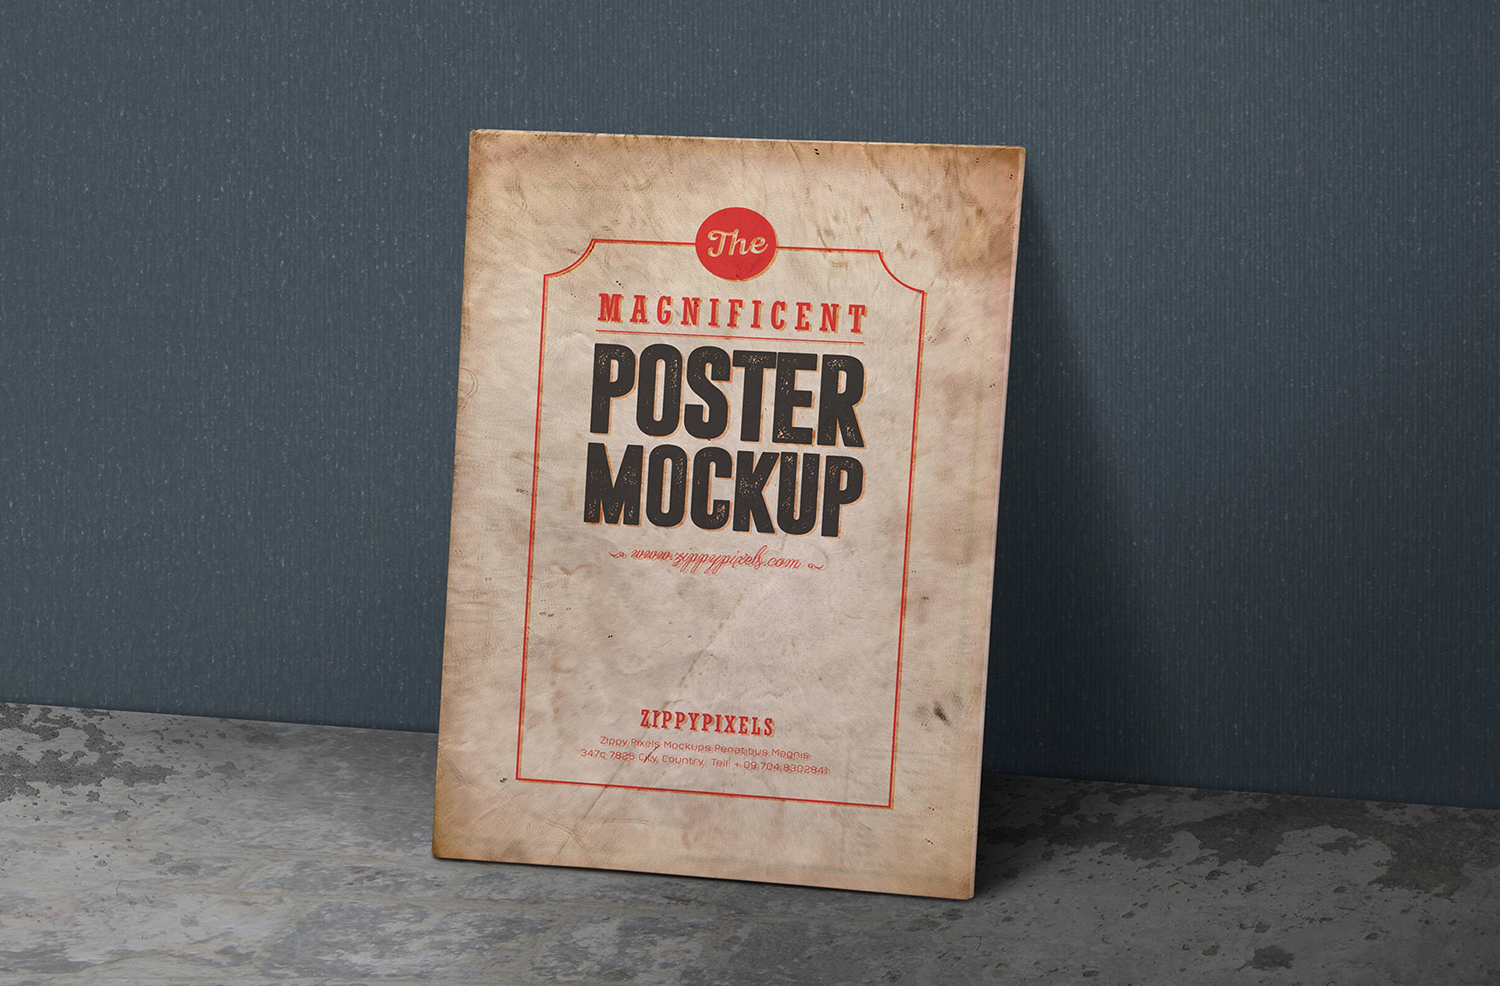 Free Madnificent Vintage Poster Mockup